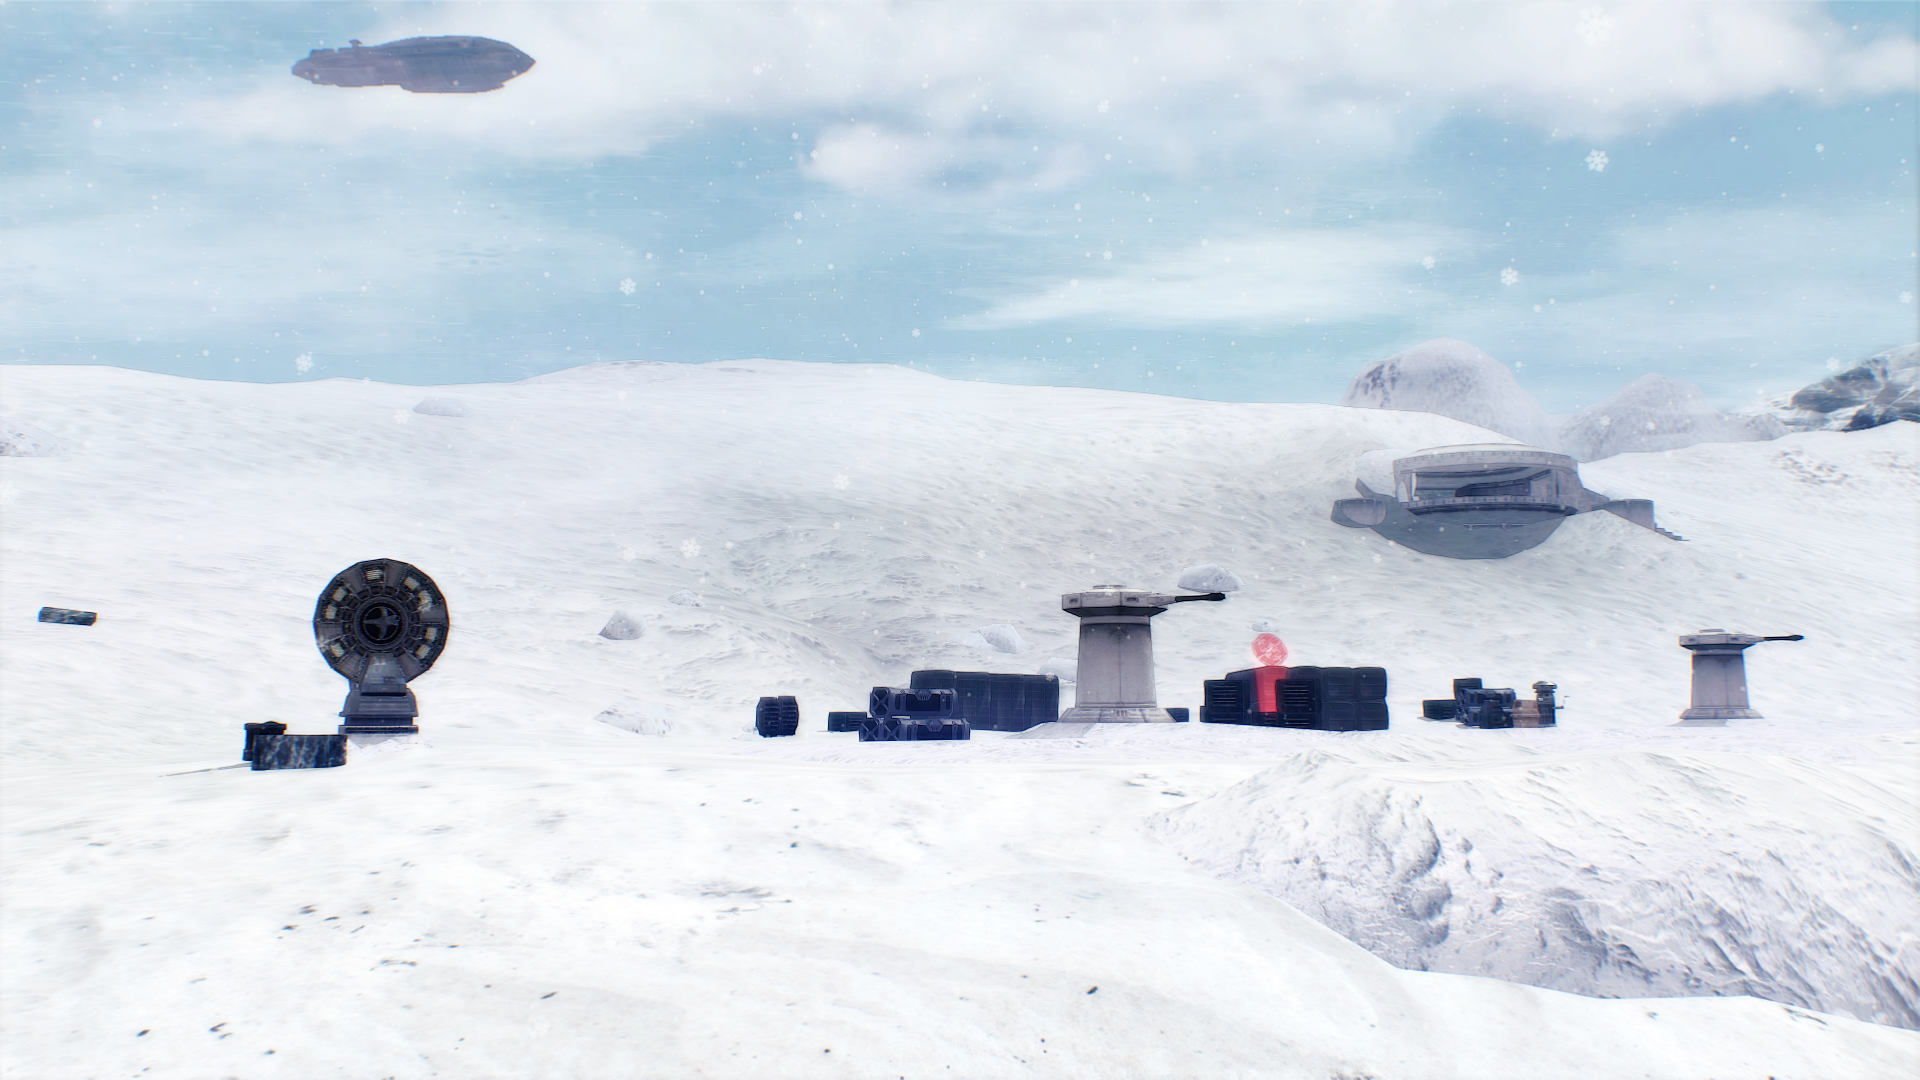 Hoth imperial outpost